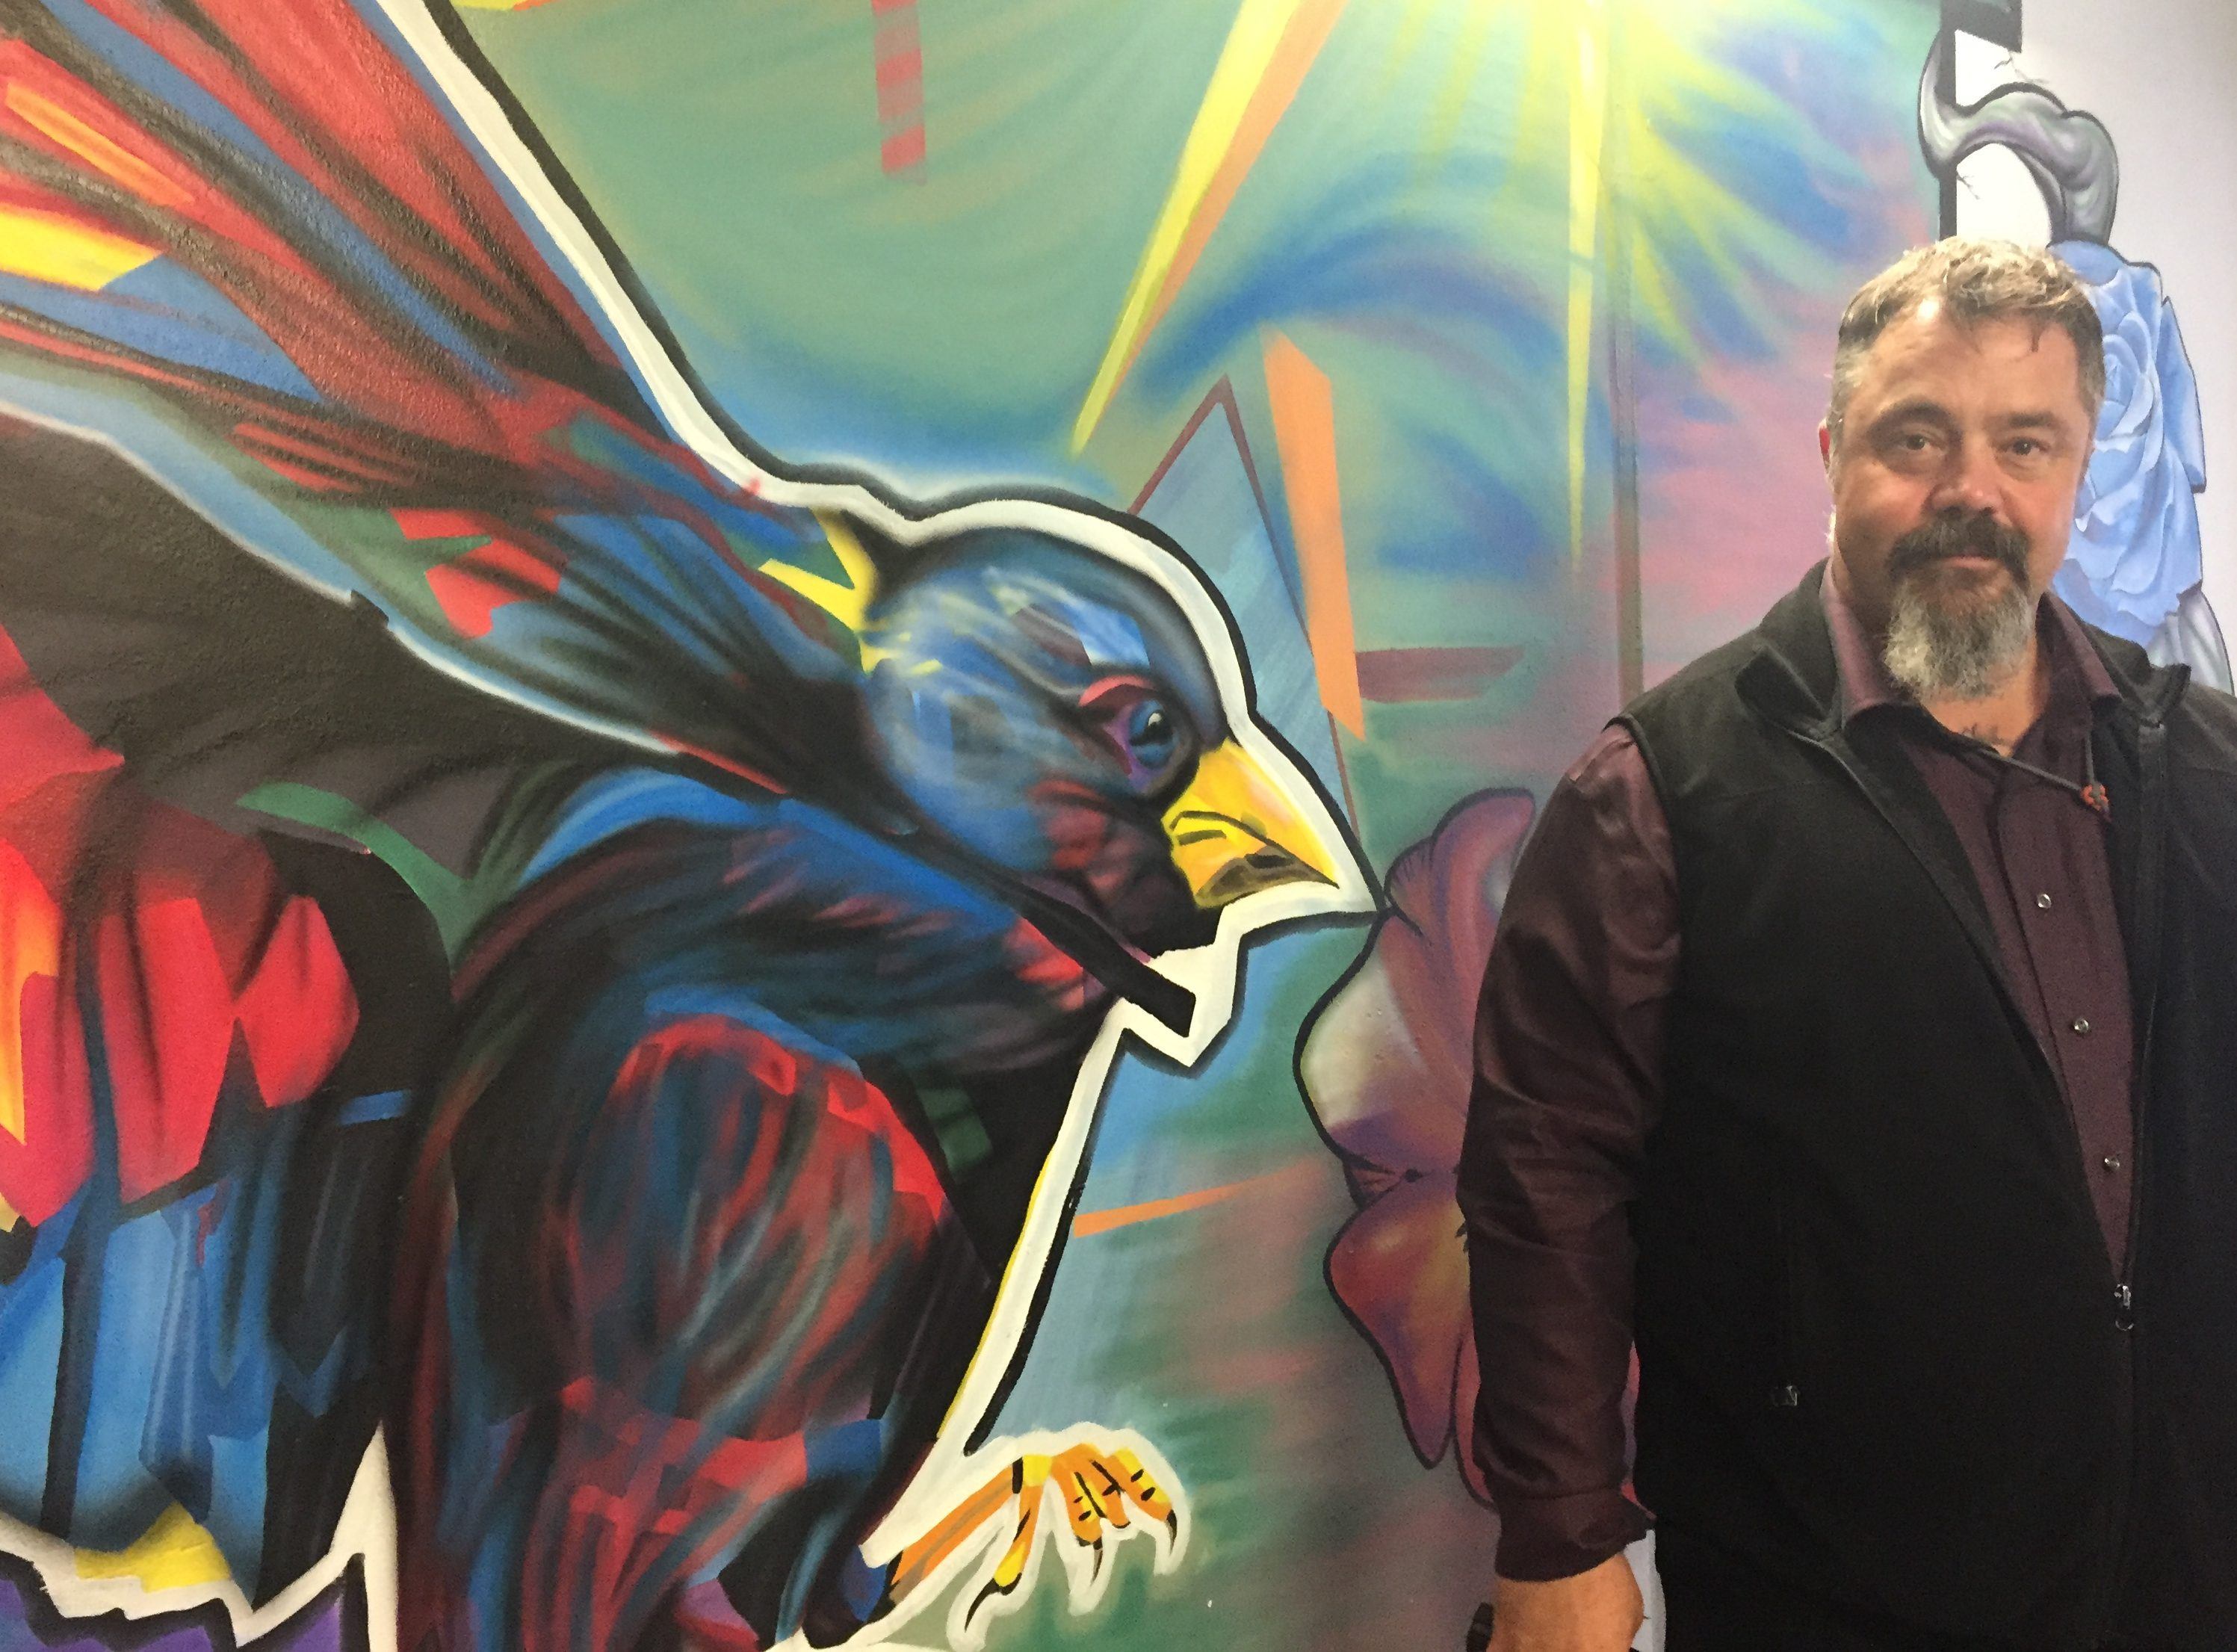 Spring Creek Superintendent Bill Lapinskas poses with one of the murals in the segregation housing at the Correctional Center. (Photo by Anne Hillman/Alaska Public Media)